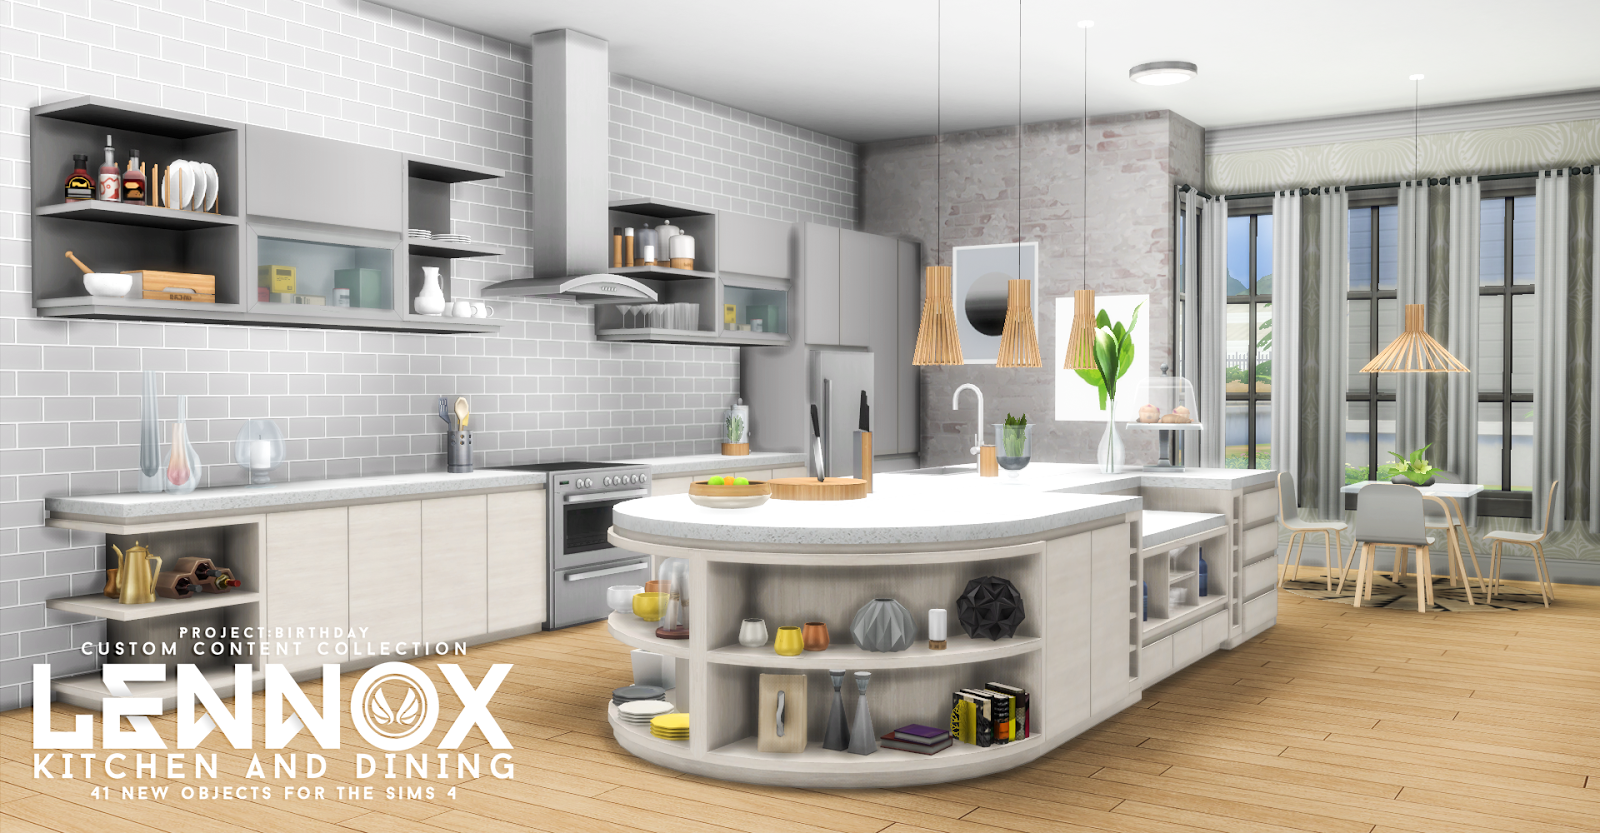 Sims 4 Offene Küche Simsational Designs Lennox Kitchen And Dining Set